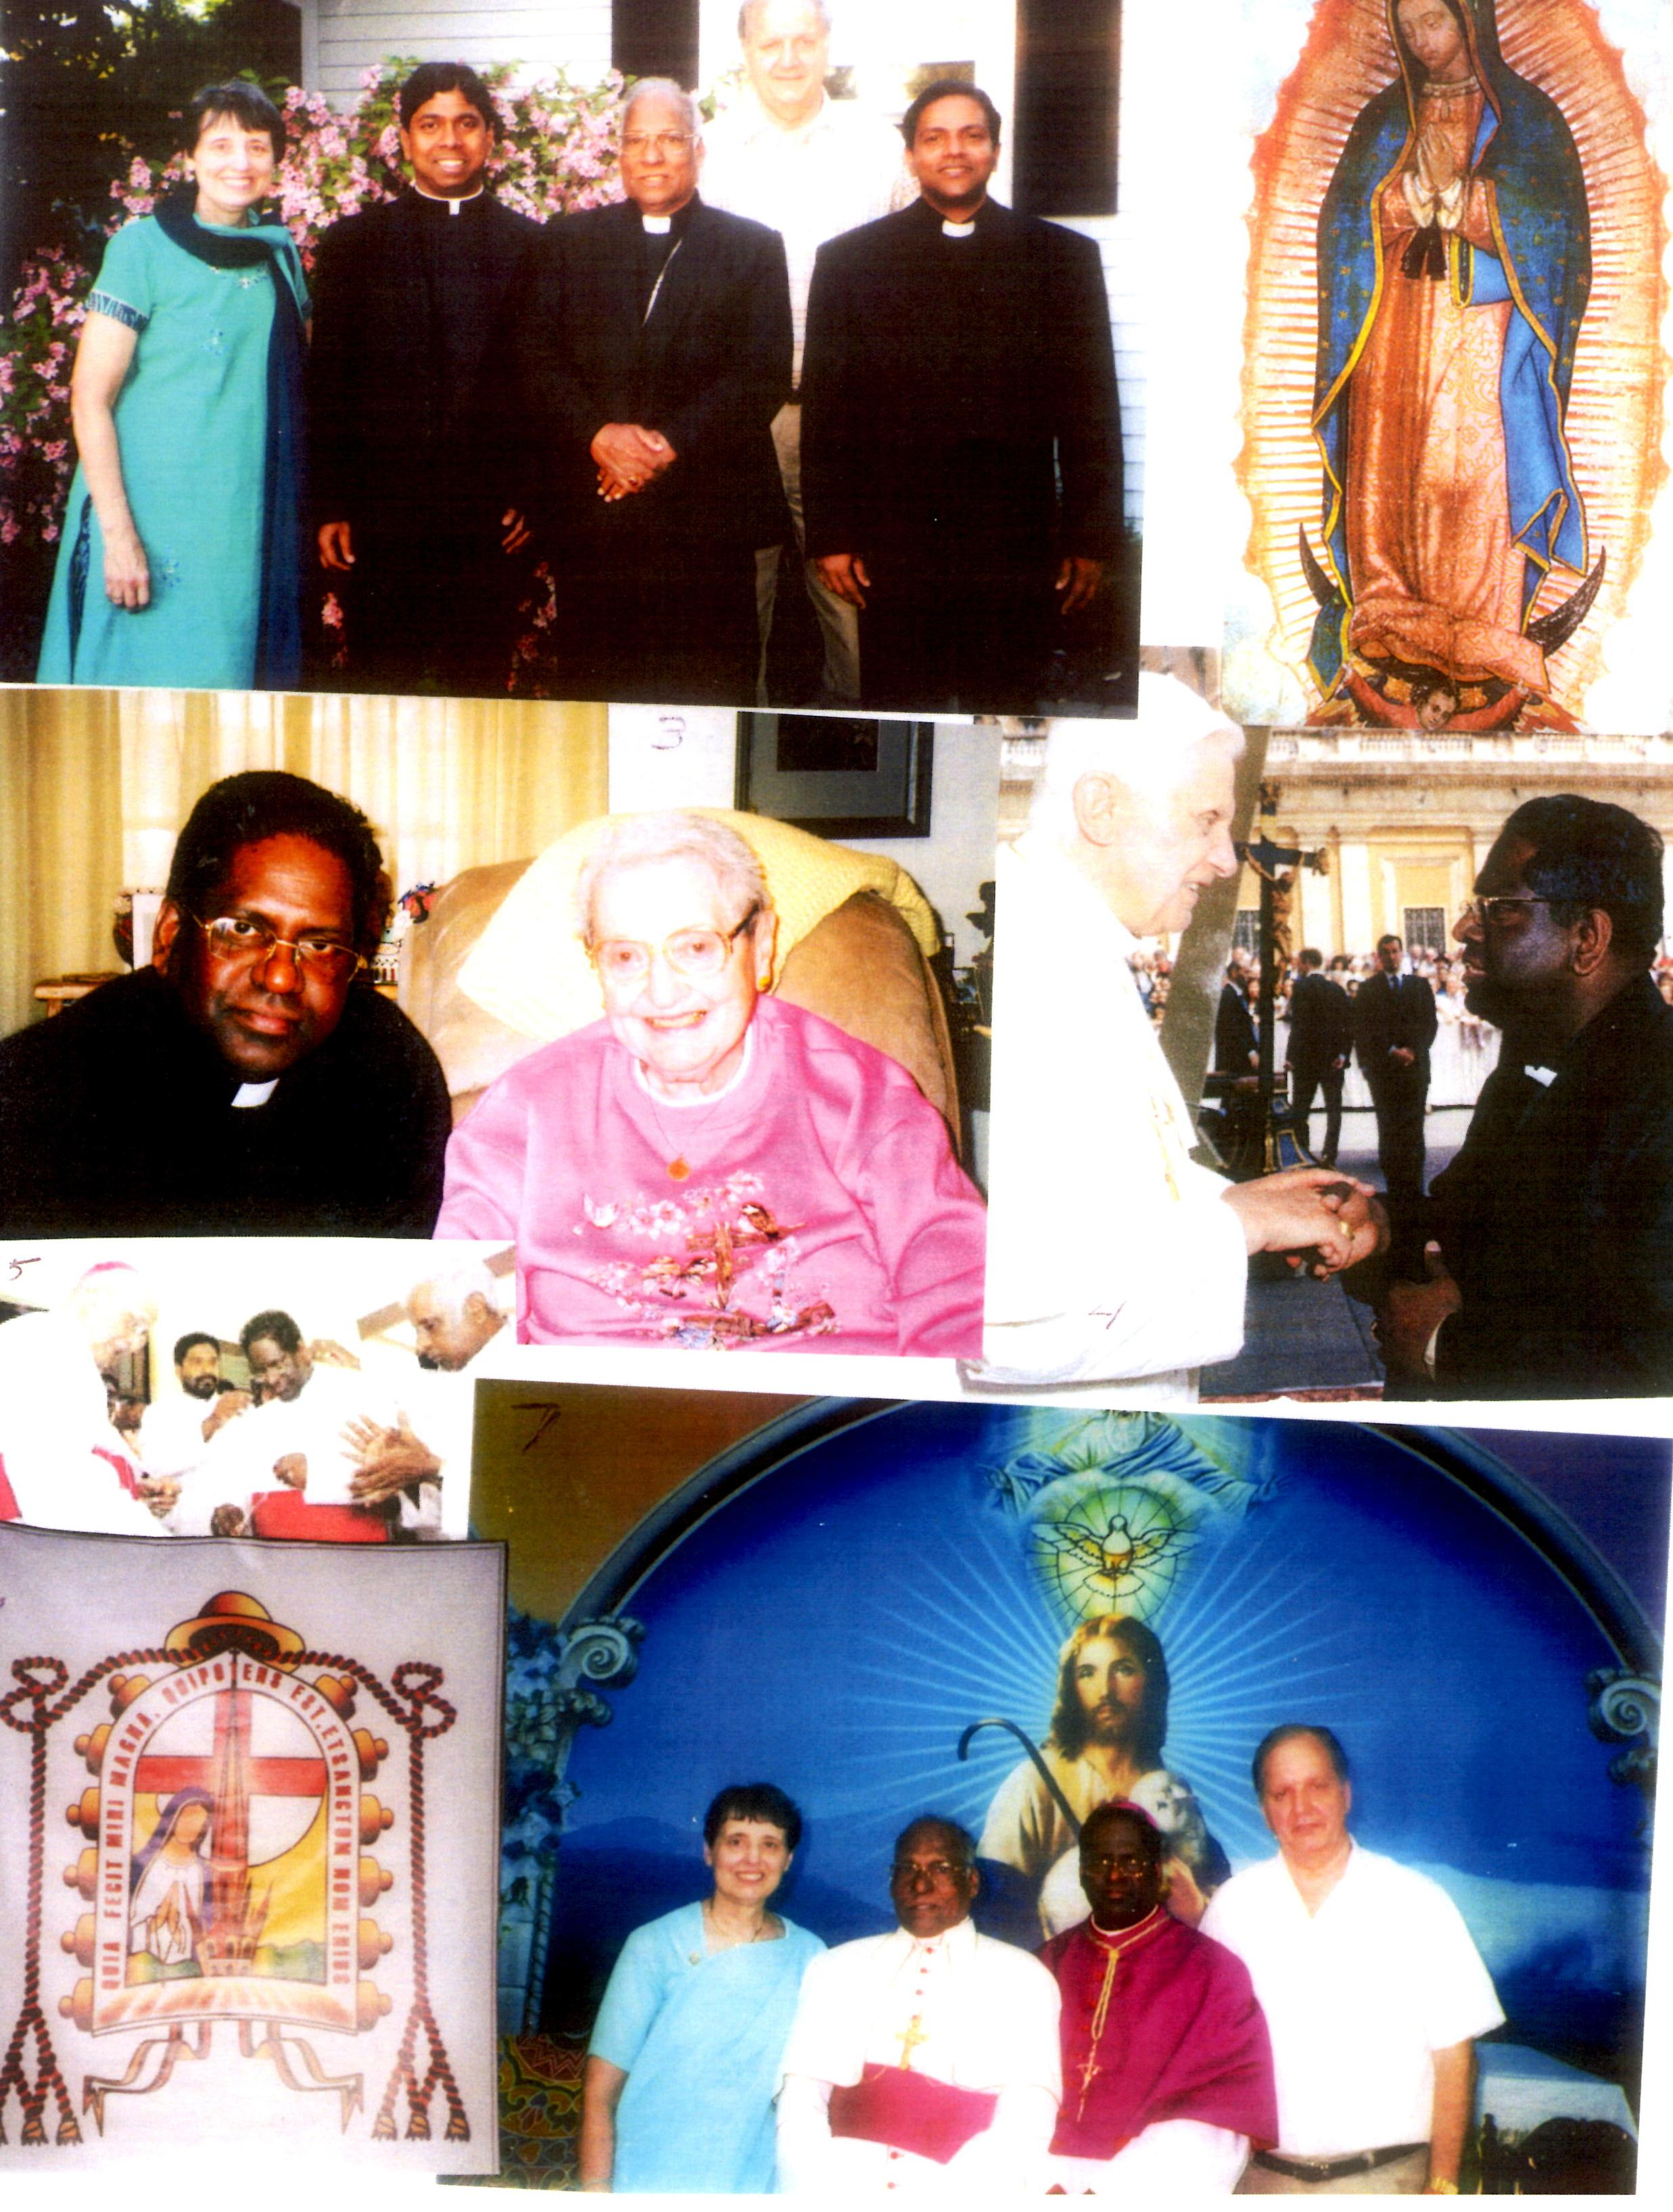 Pictures: I) Kathy, Fr. Thomas Tharayil, new Director of Social Service, Bishop Peter, Fr. Thomas Thyparambil ( ministering at St. John Vianney Seminary) Dave 2) Our Lady of Guadalupe 3) Bishop Sebastian and sponsor Rose Mayer 4) Pope Benedict and Bishop Sebastian on May 10, 2006 5) Bishop Sebastian receiving Pontifical Sash and Crucifix from Archbishop Cornelius 6) Bishop Sebastian's Coat of Arms with motto 7) Kathy, Bishop Peter, Bishop Sebastian, Dave - (Consecration day) July 2, 2006